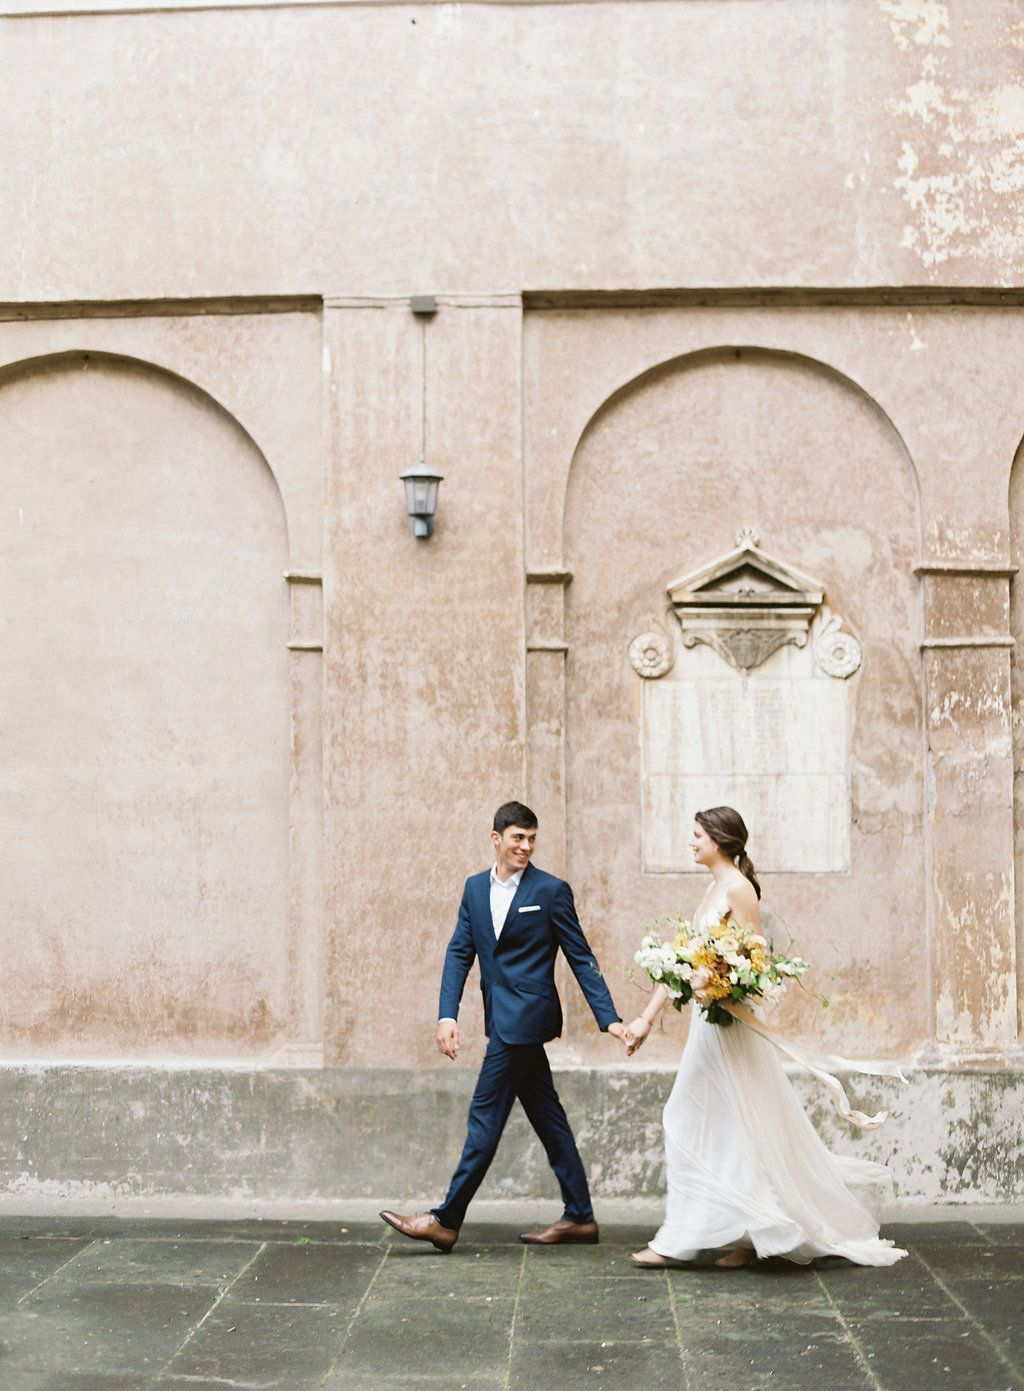 Vicki_Grafton_Photography_Rome_Italy_Wedding_Photographer_2017-74